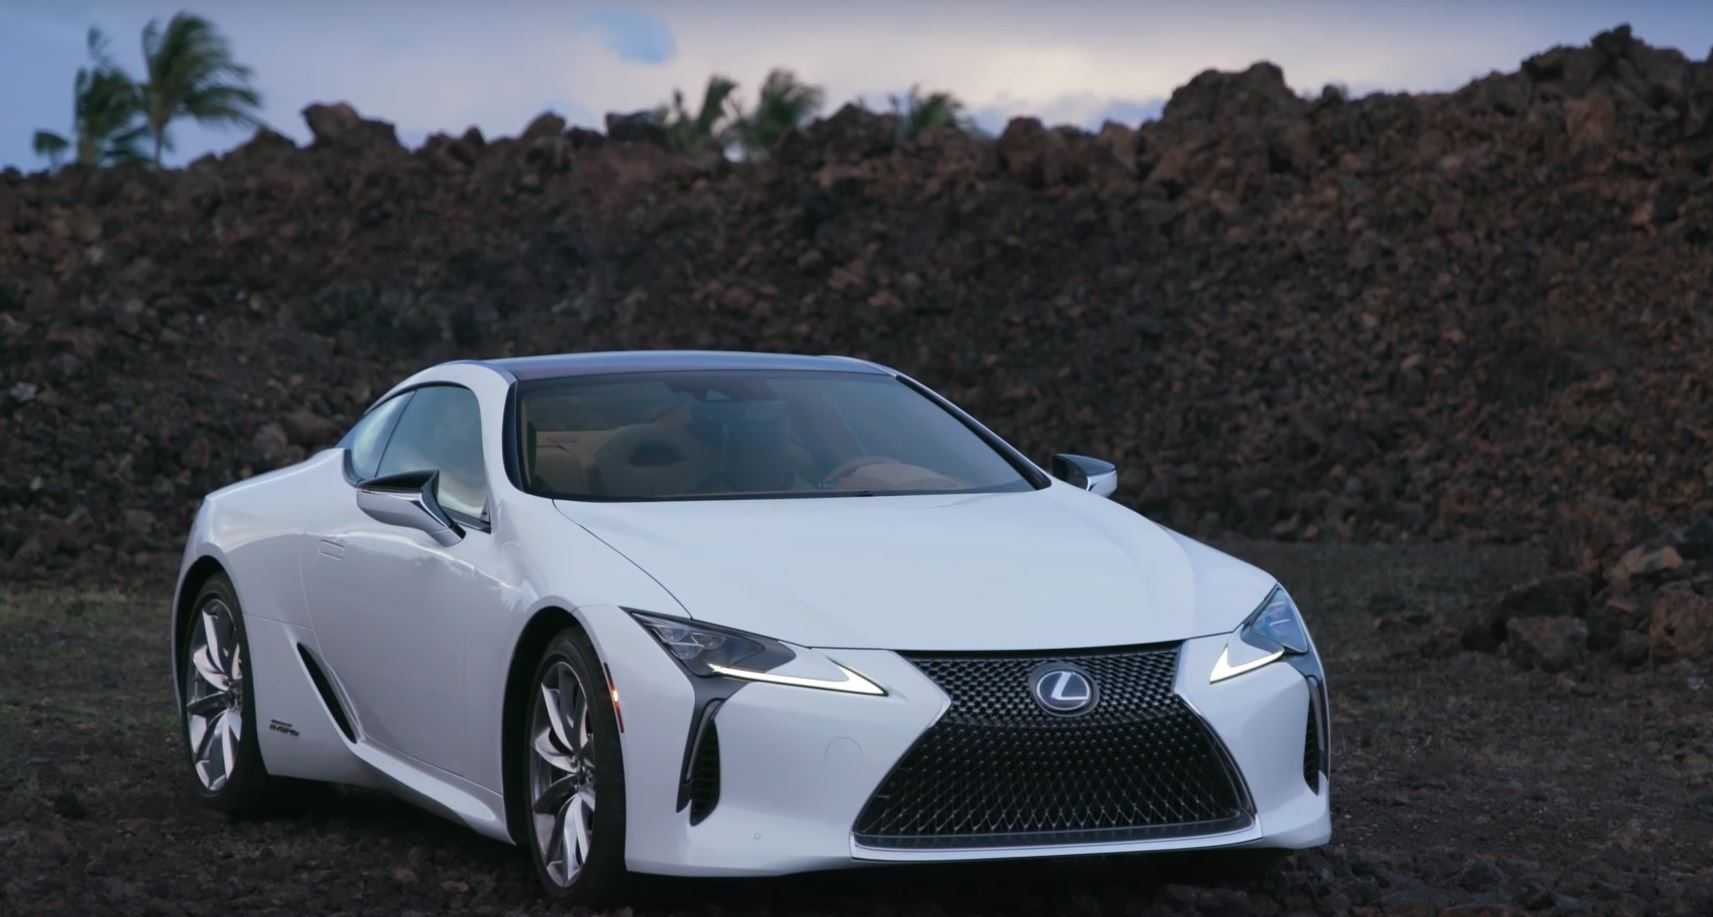 Lexus Lc500 Gets One Take Review From Matt Farah